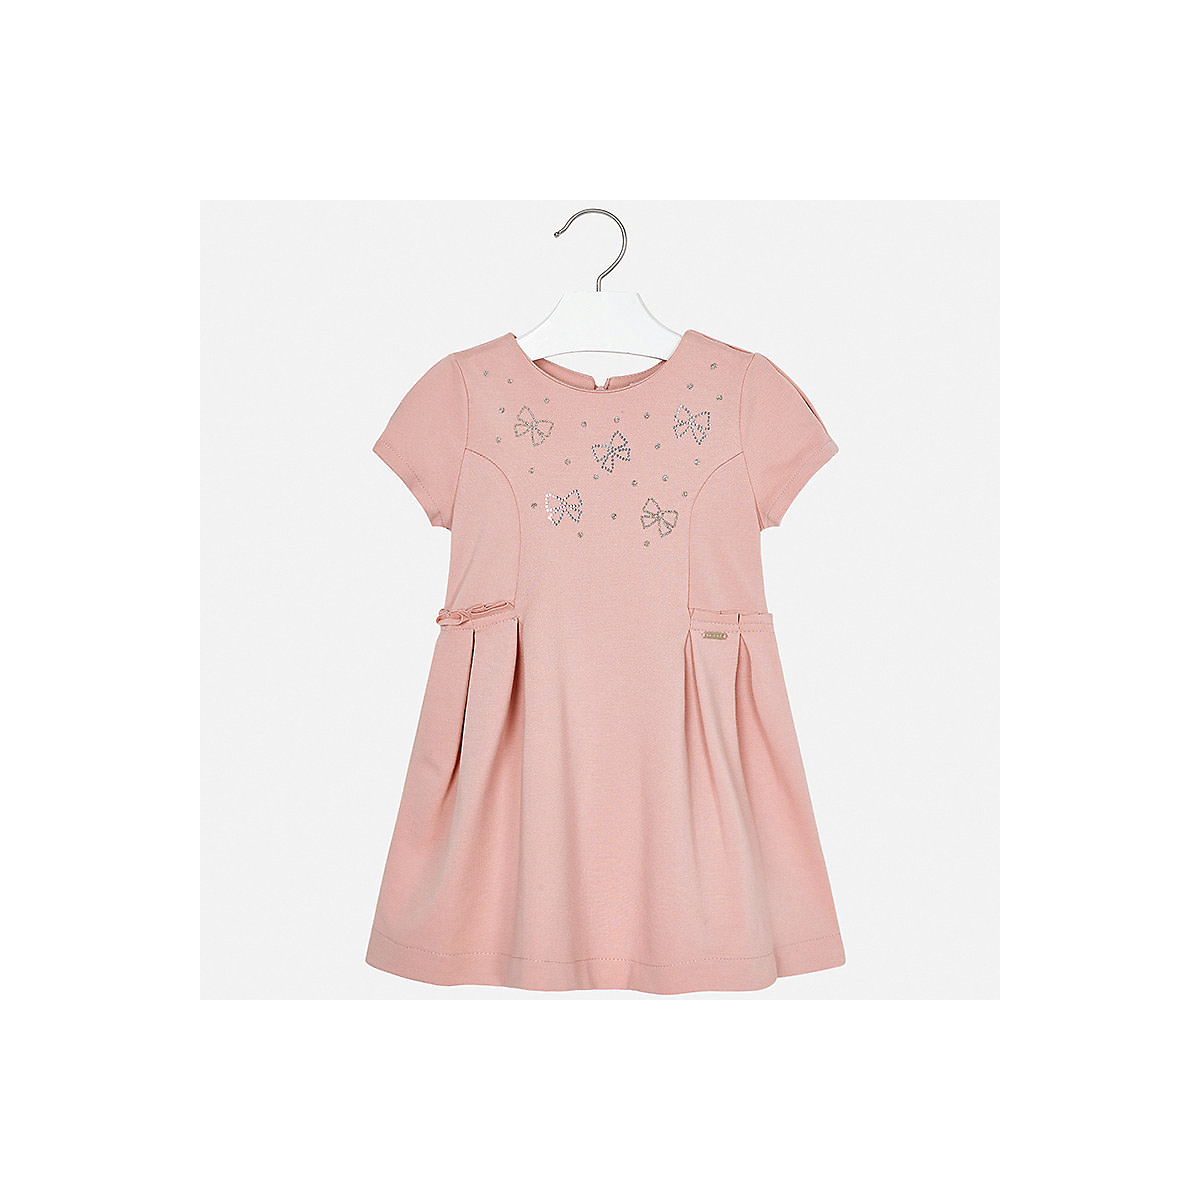 MAYORAL Dresses 8849310 Viscose Casual children clothing